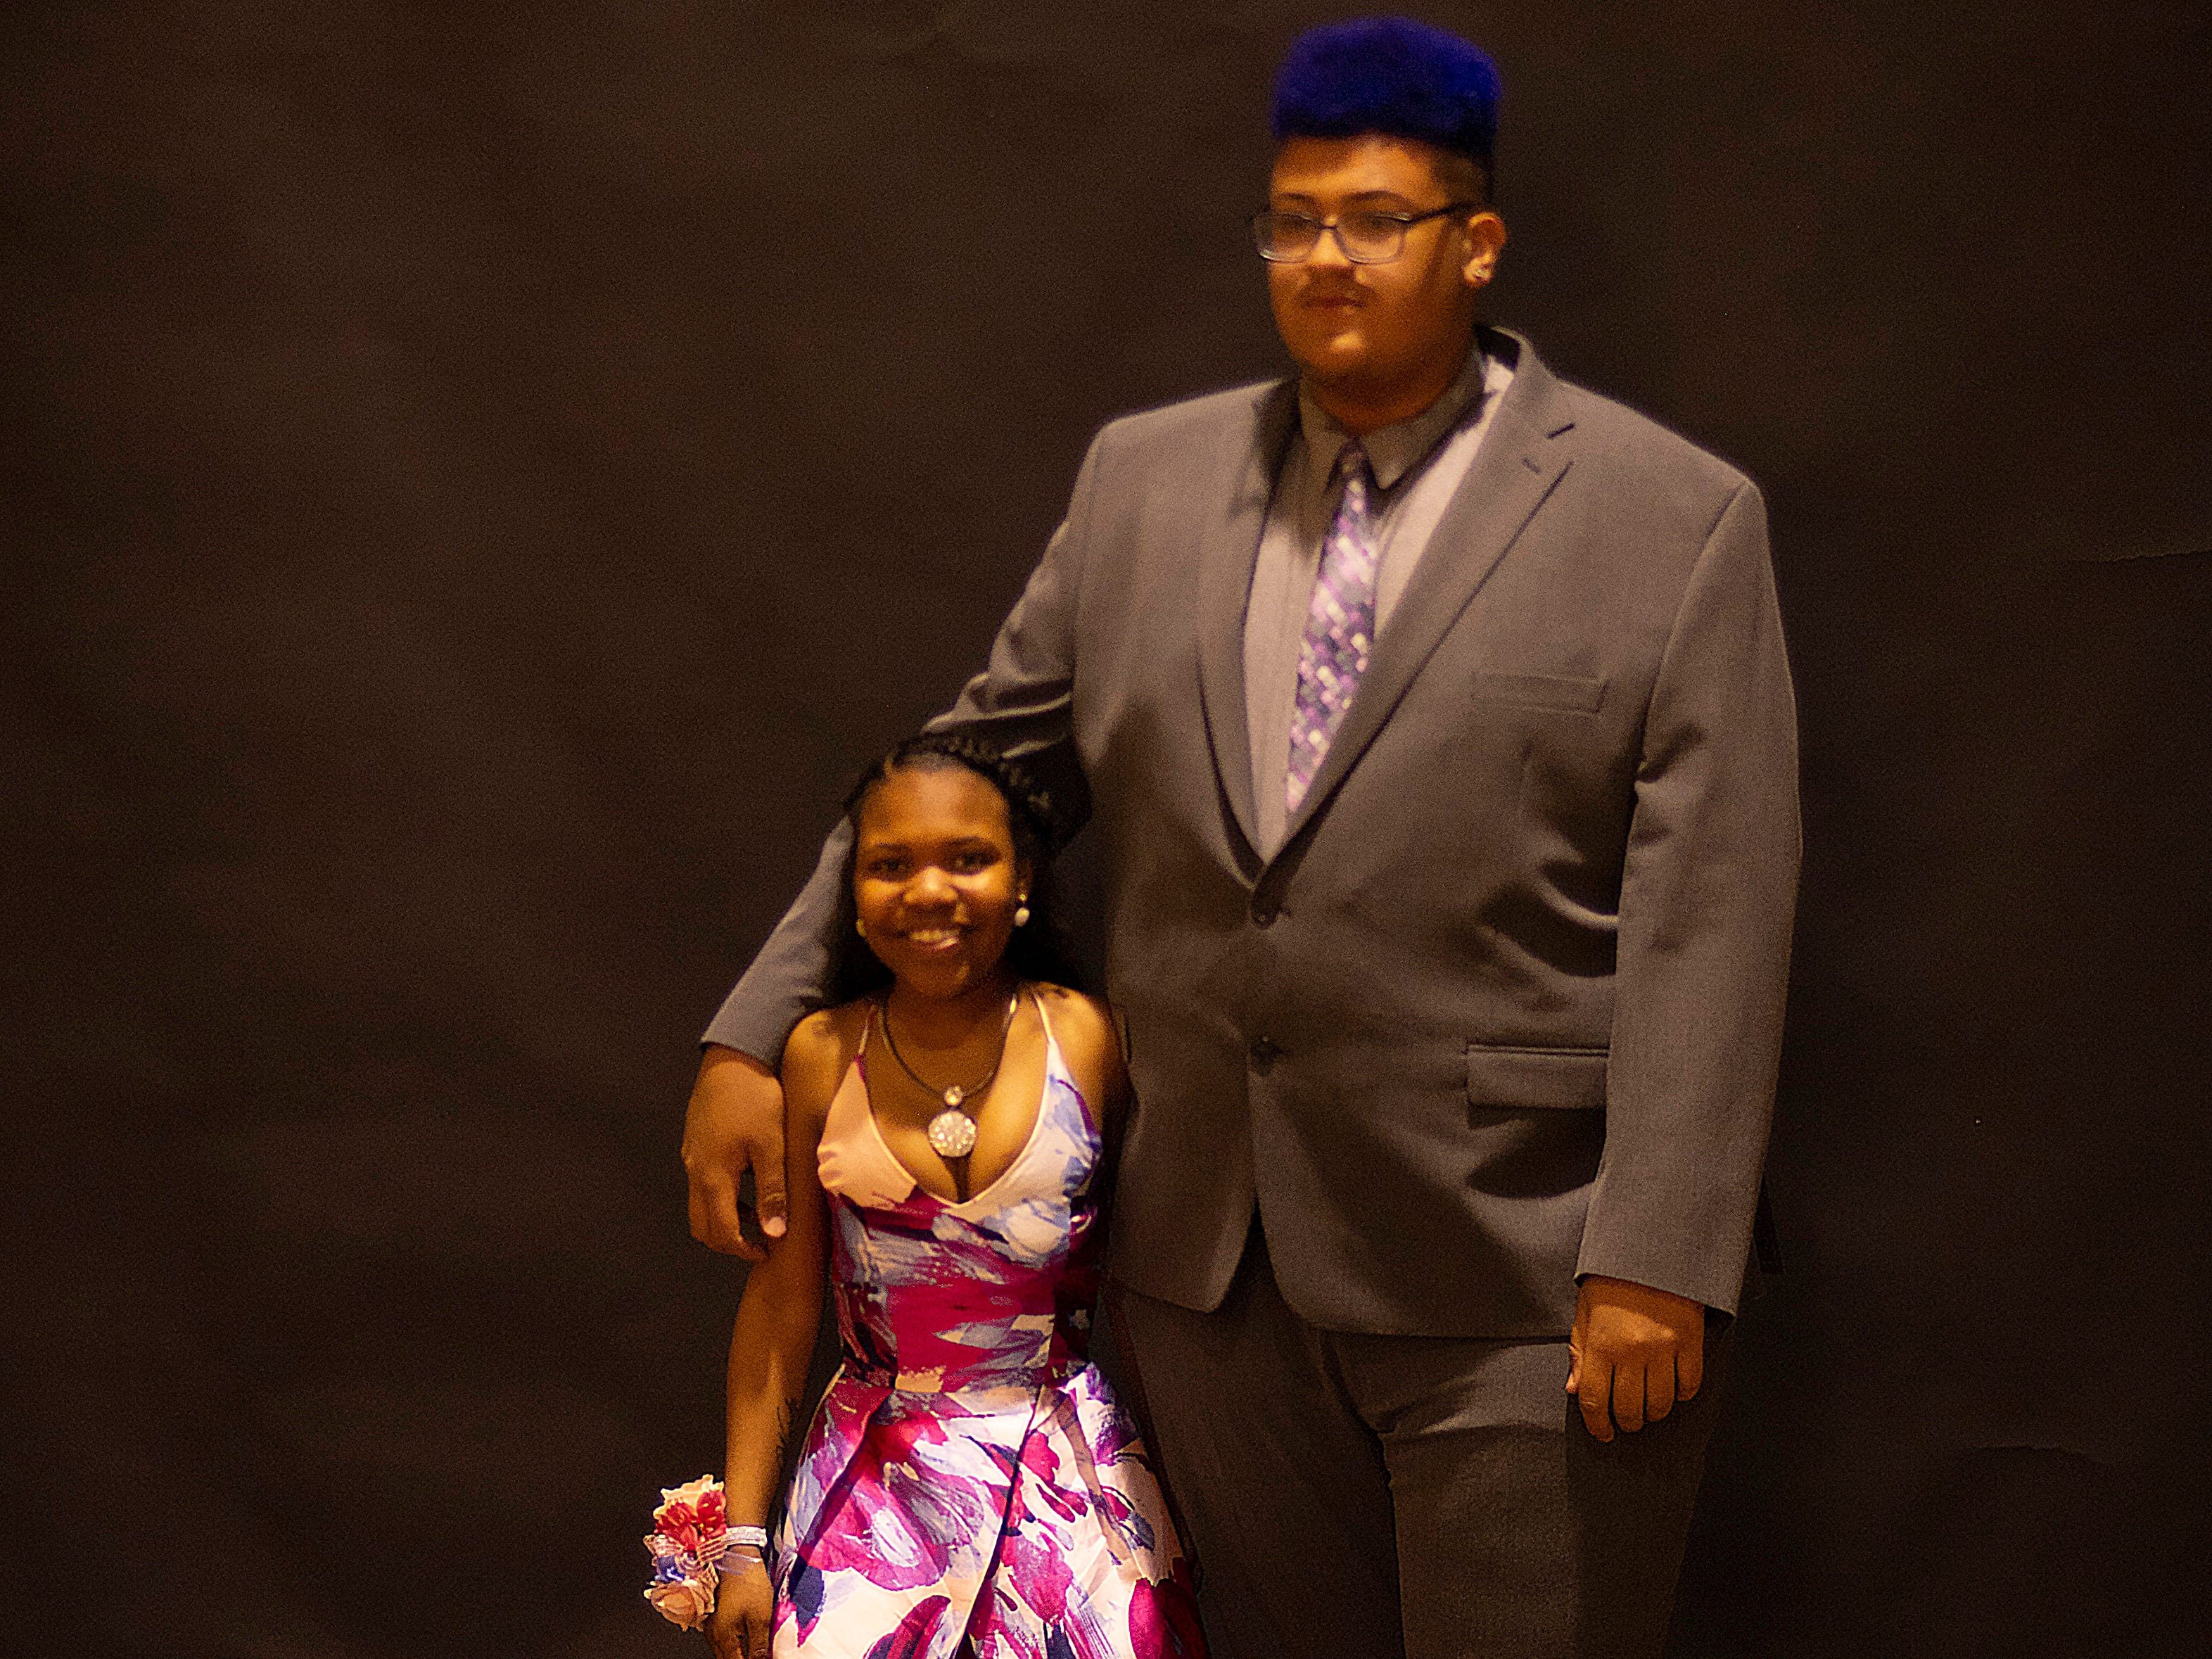 Na'brisha Howard and James Peaches pose for their prom picture at the Harwood Career Prep prom Saturday night.